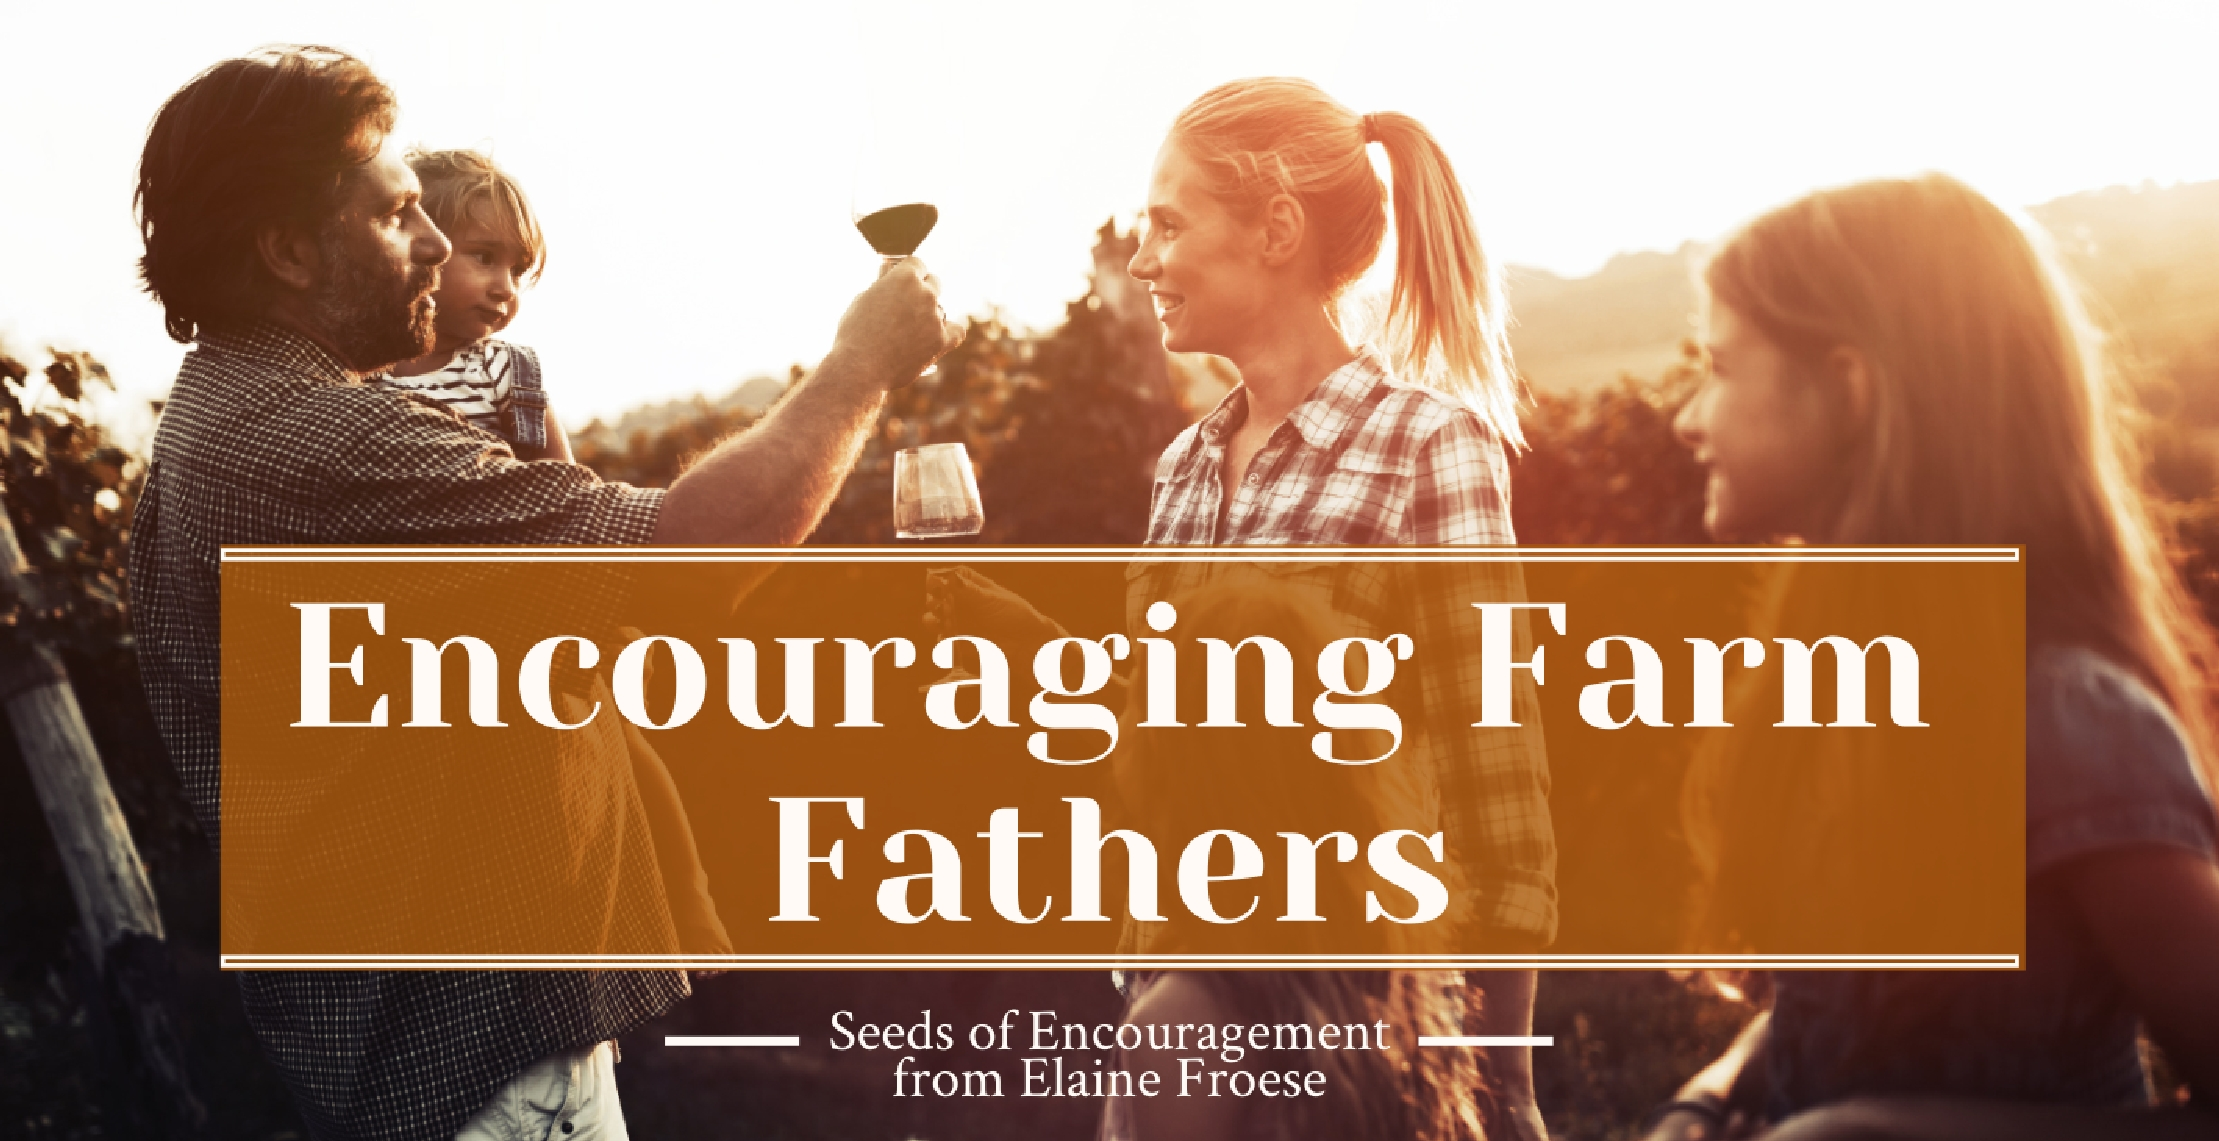 Encouraging Farm Fathers